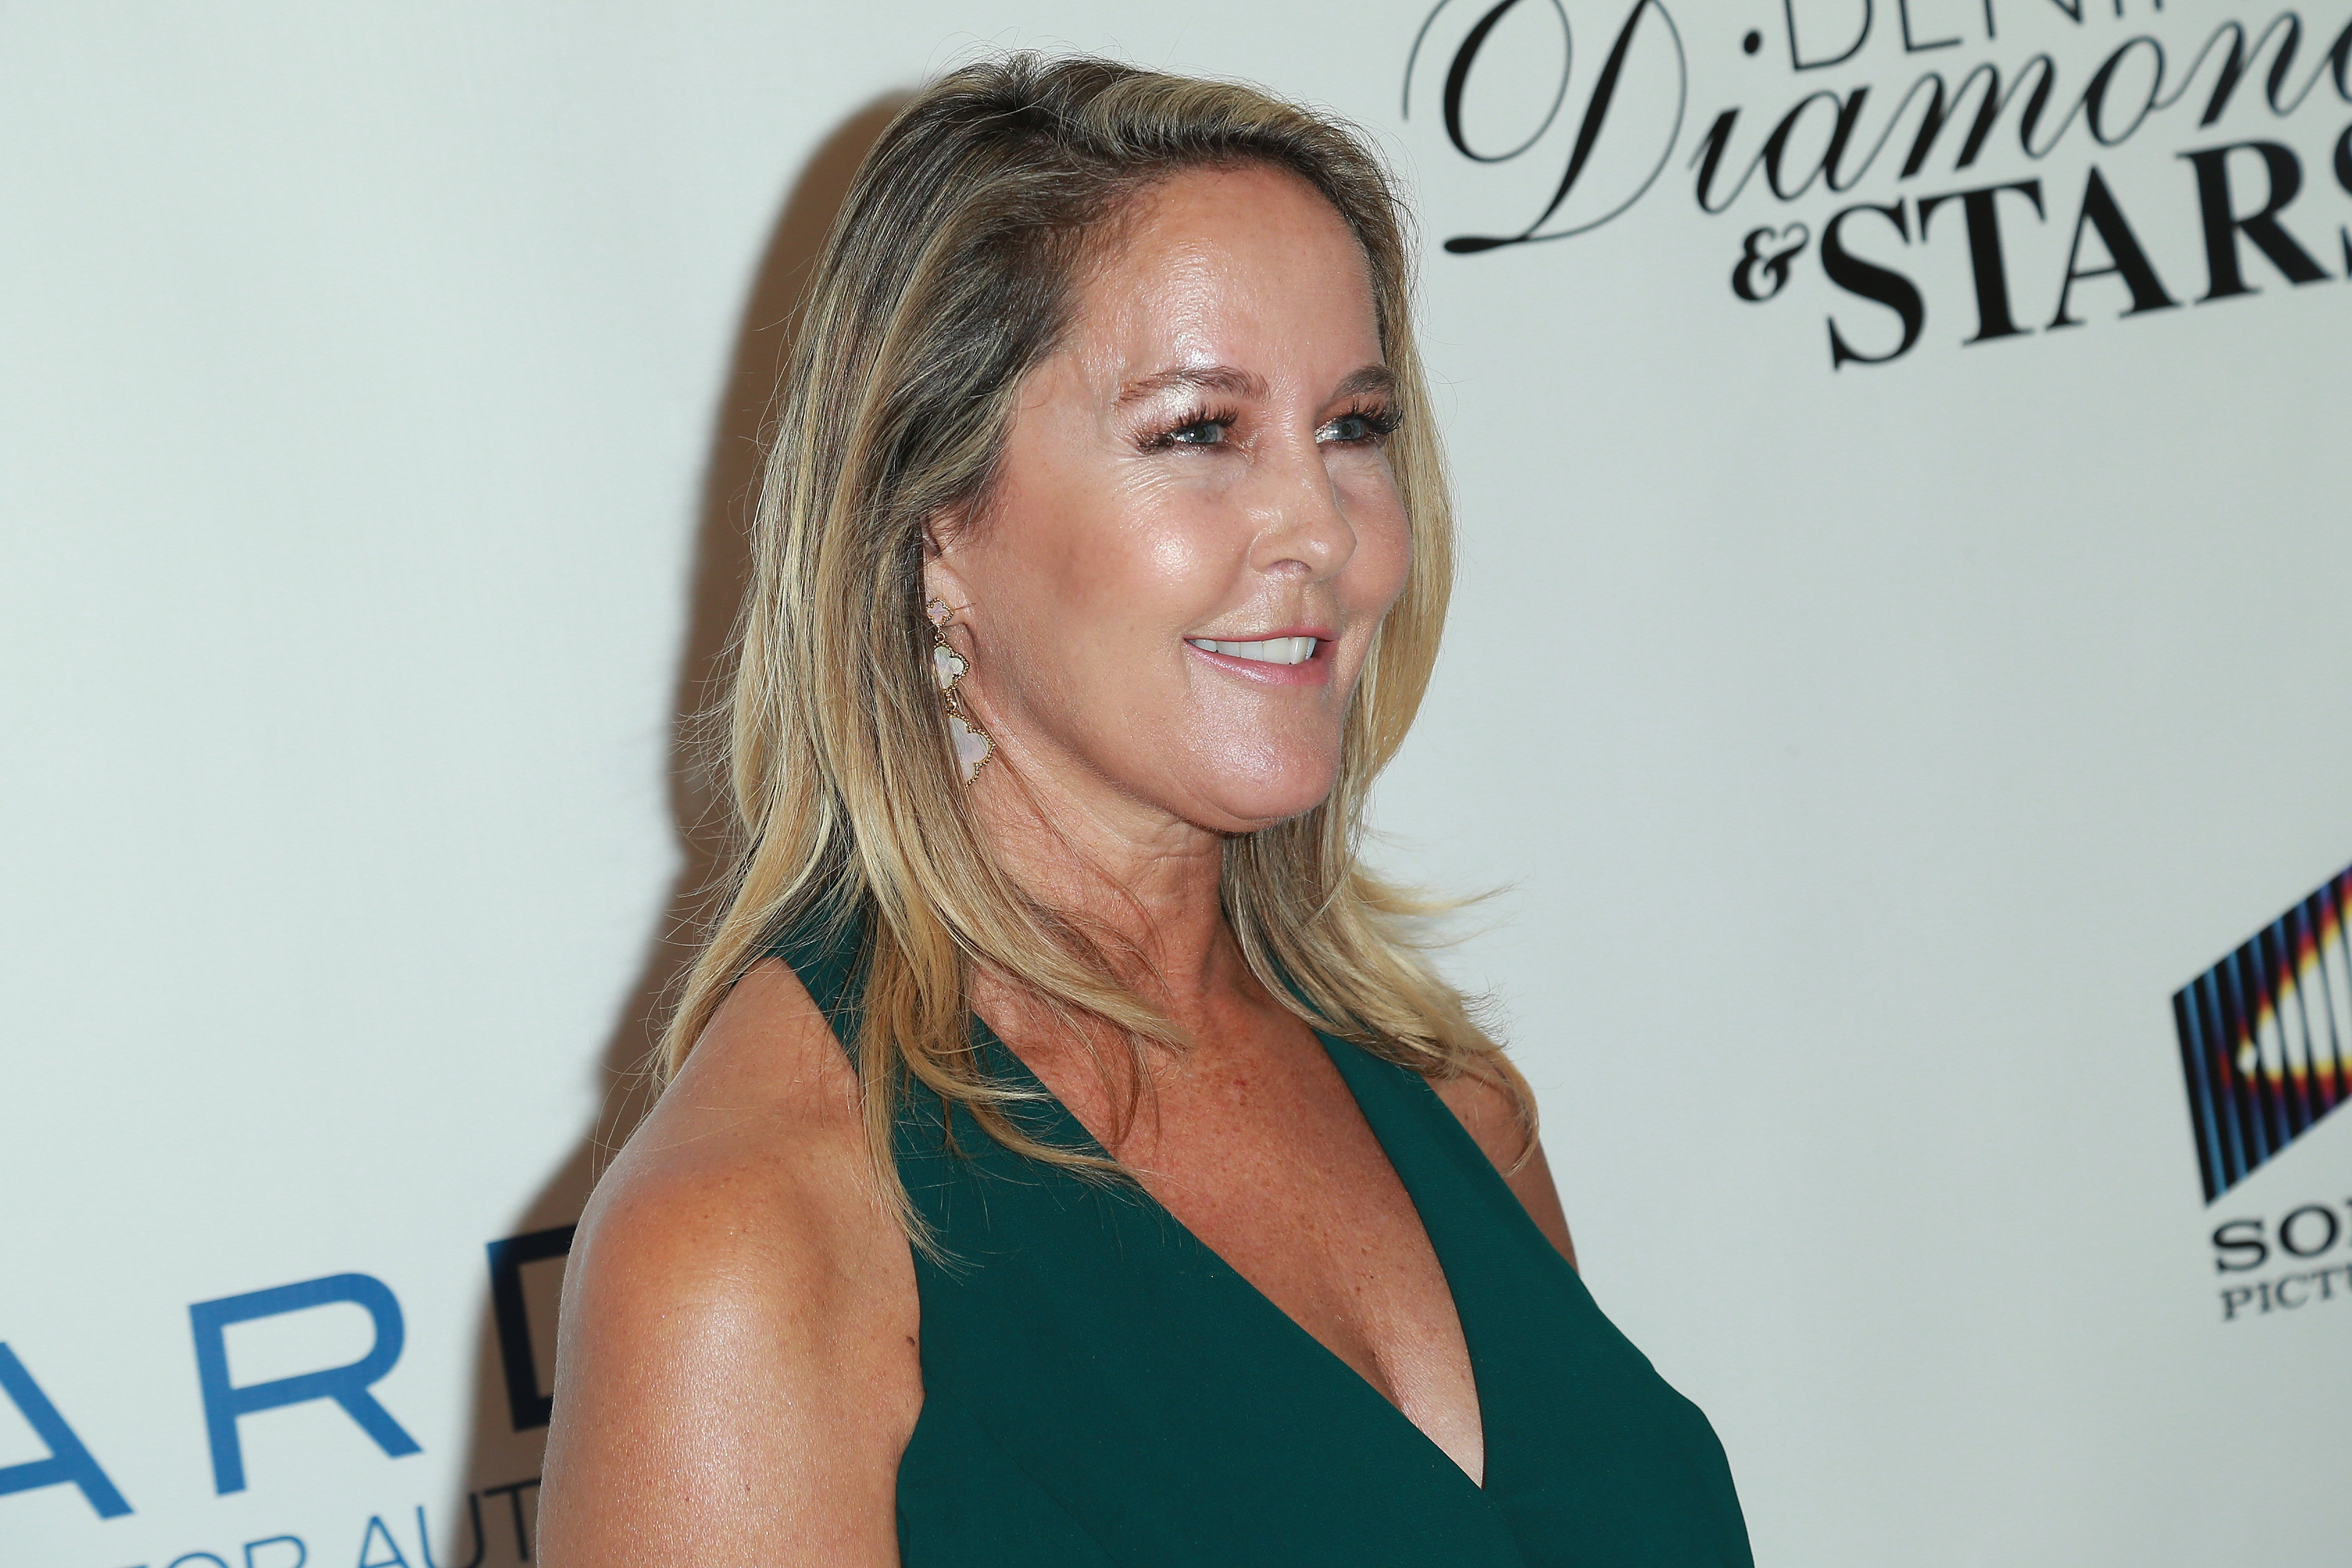 Erin Murphy attends the 13th Annual Denim, Diamonds And Stars at Four Seasons Hotel Westlake Village on October 7, 2018. | Photo: GettyImages